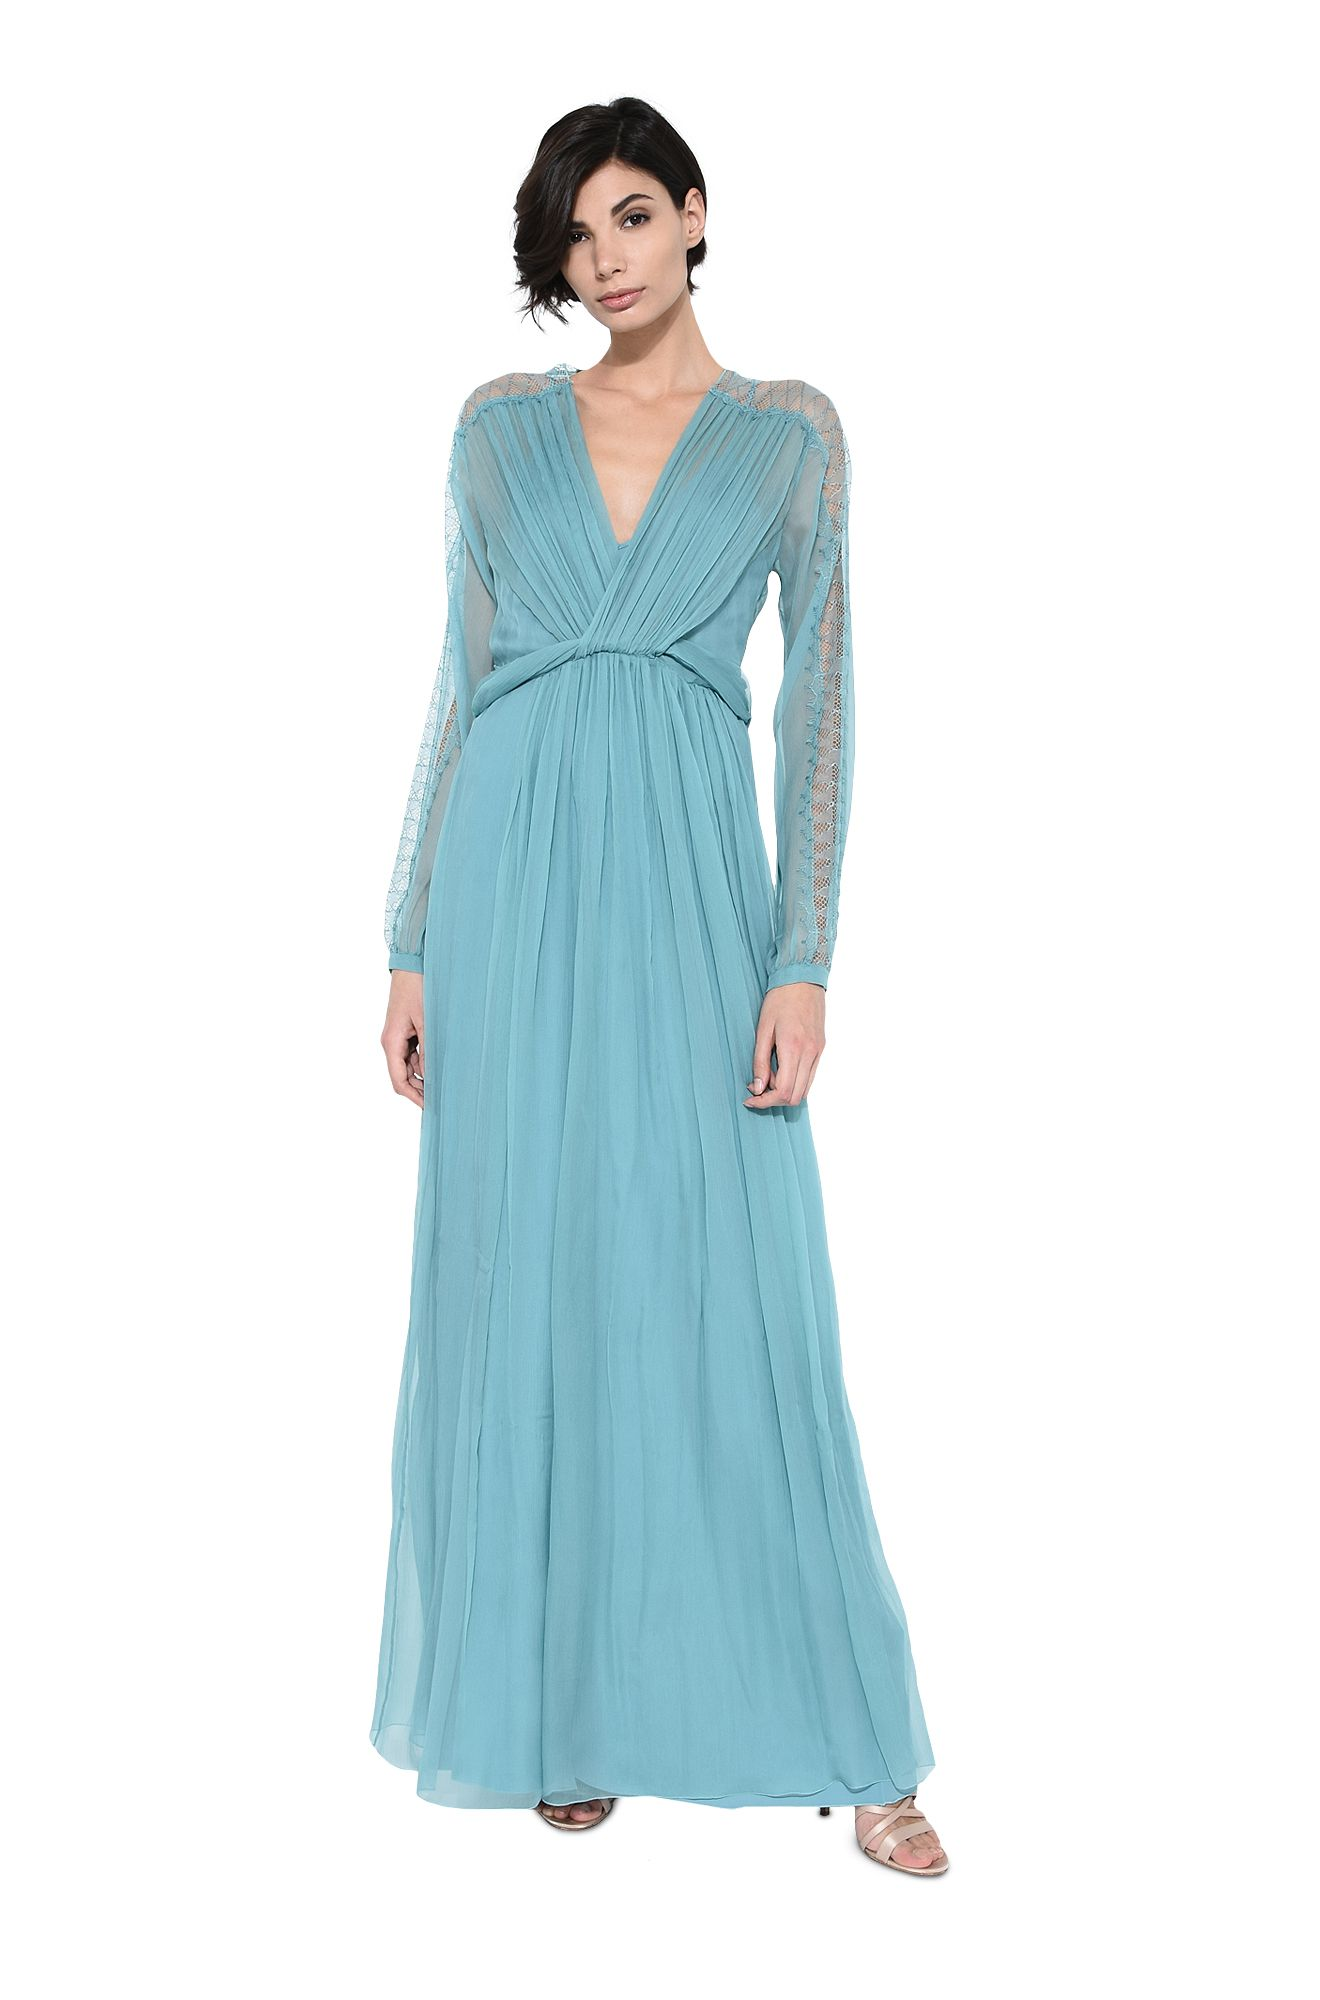 Long dress in pastel pale blue chiffon